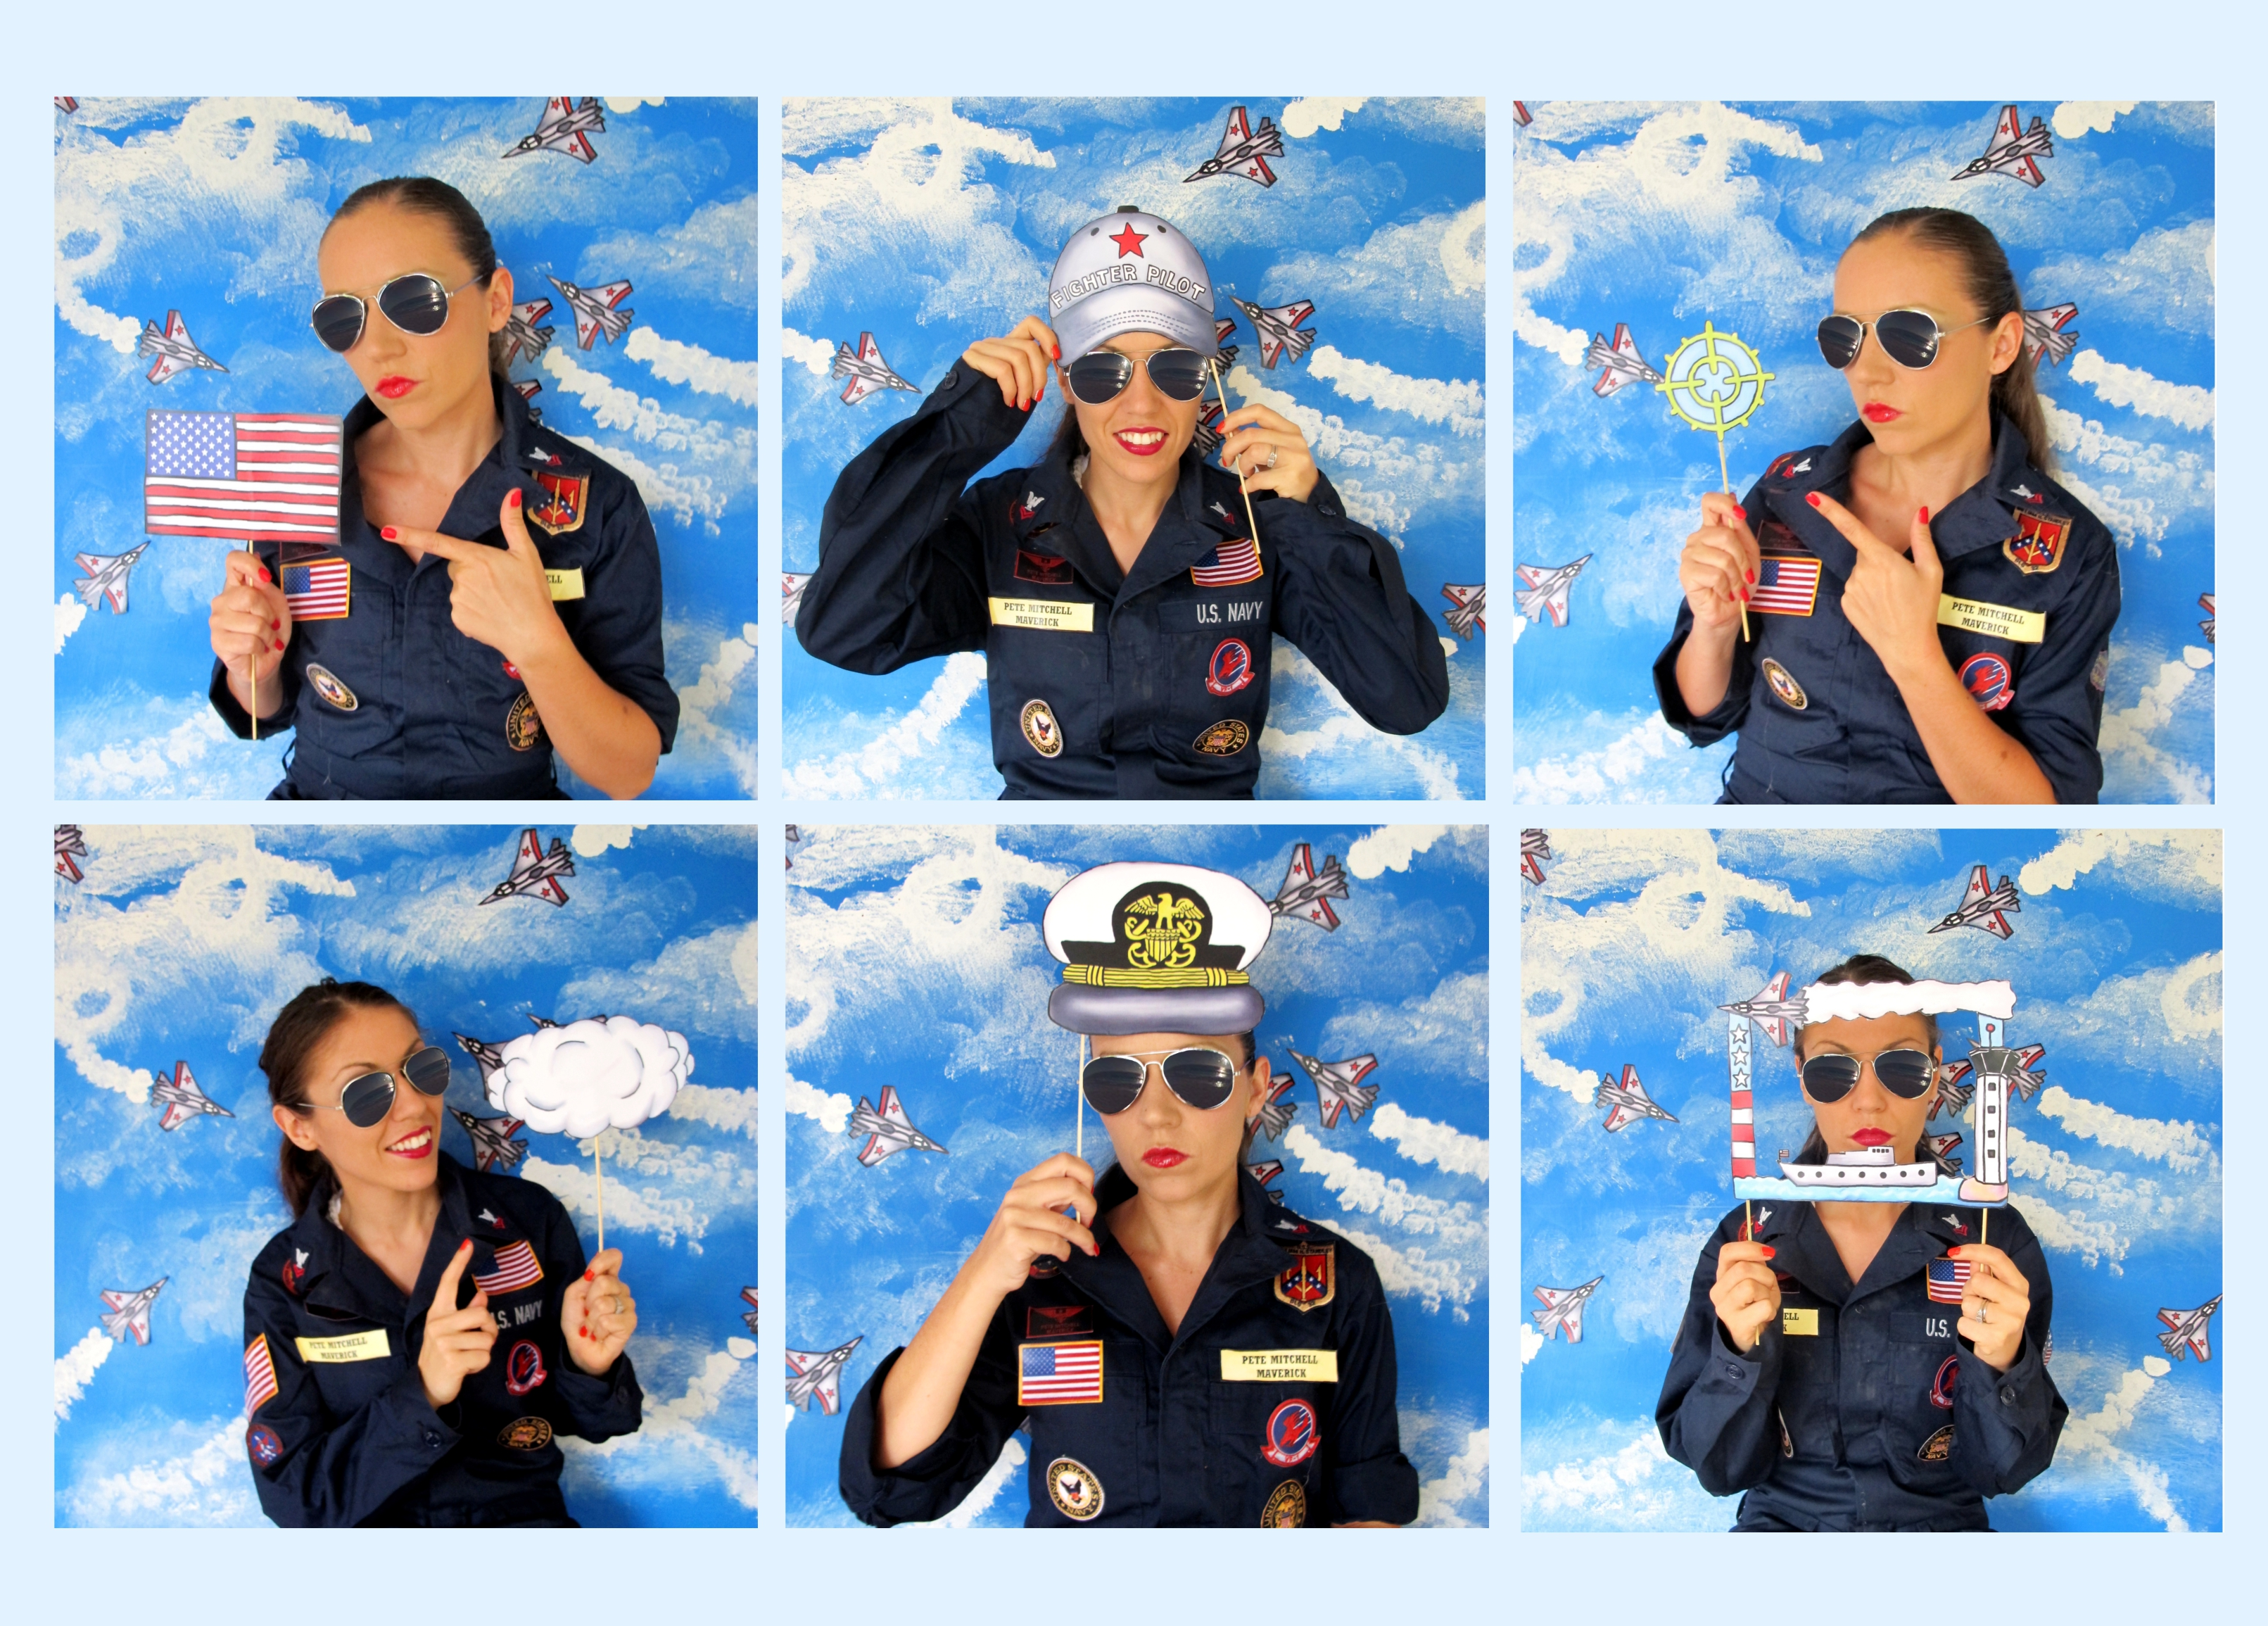 Top Gun Inspired Fighter Pilot Navy Photo Booth Props Perfect For